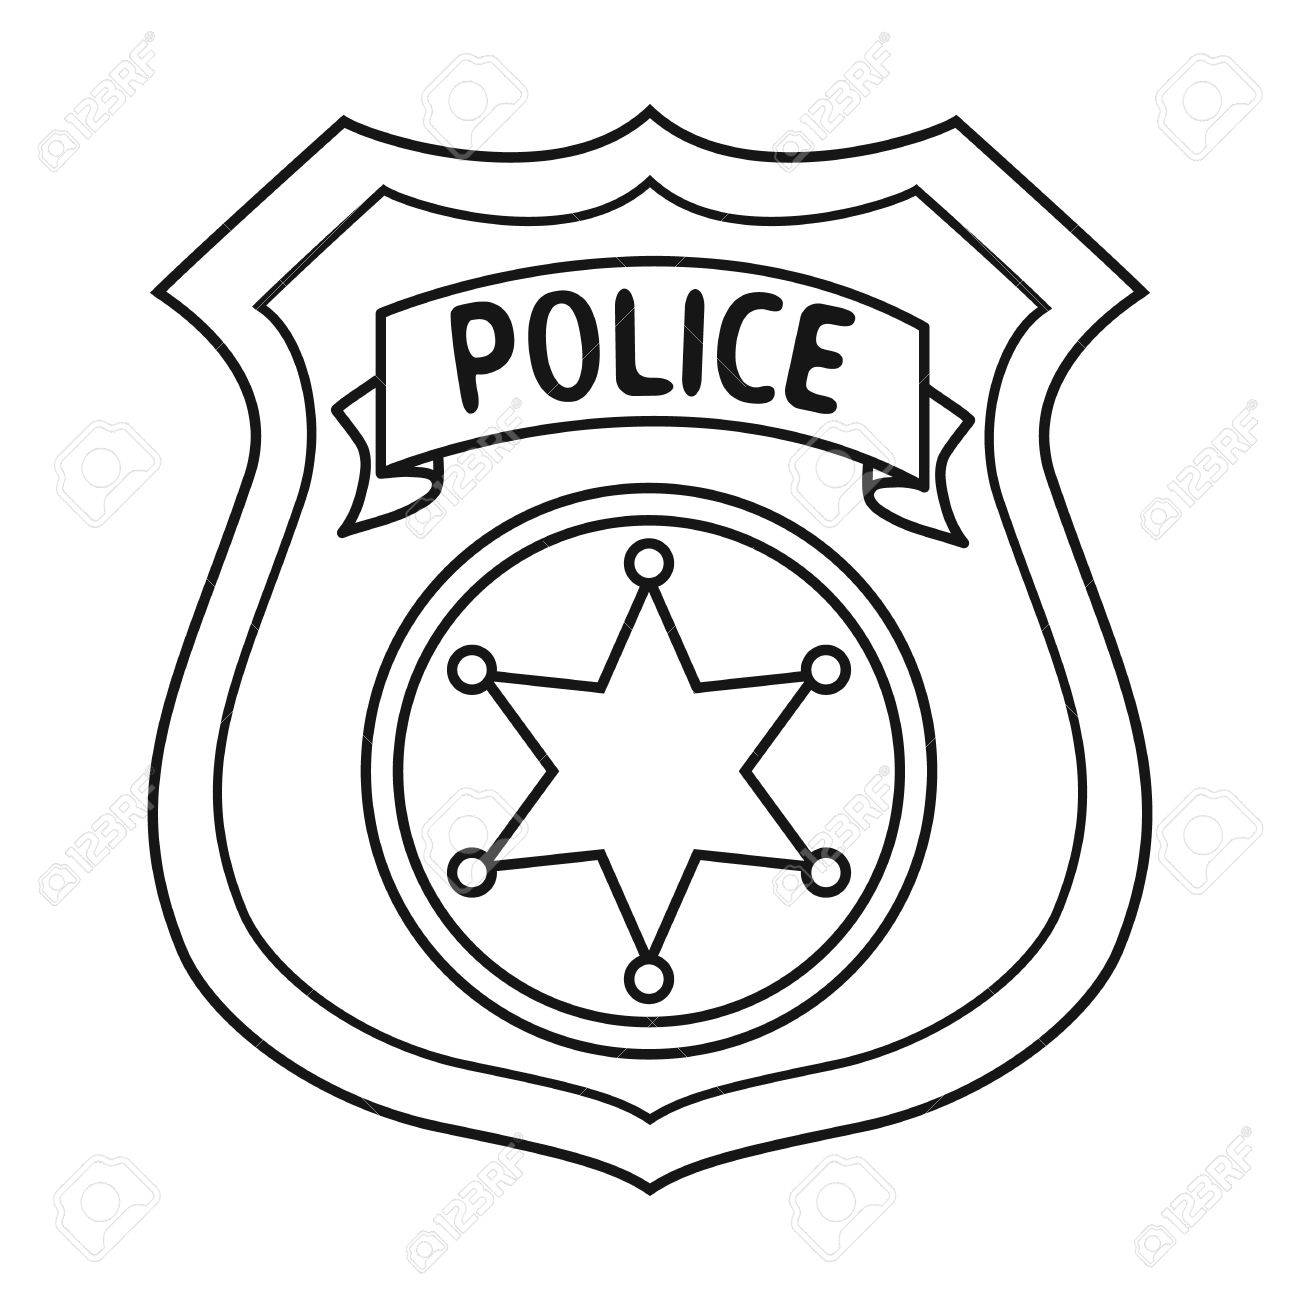 photograph about Printable Police Badge titled Printable Law enforcement Badge Free of charge obtain great Printable Law enforcement